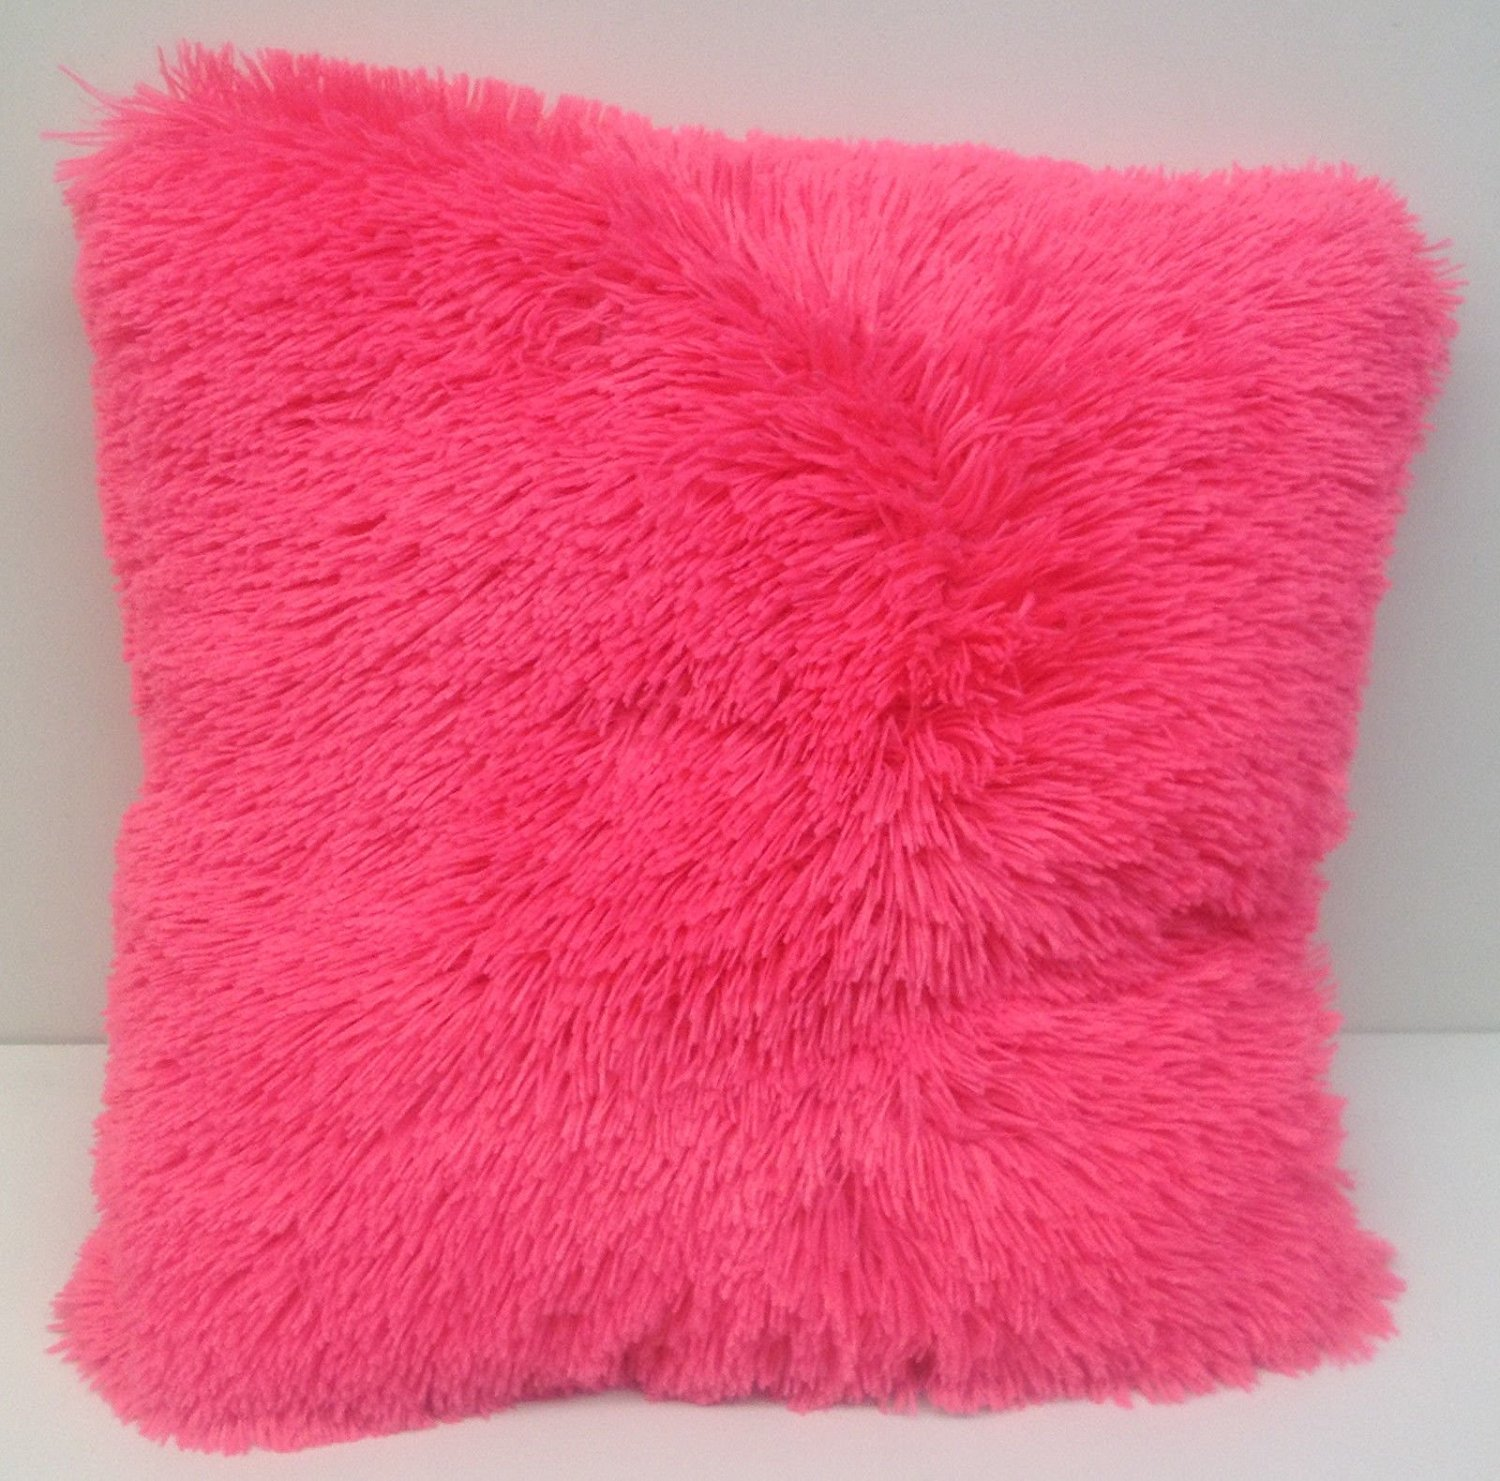 Set of 2 Large Shaggy Faux Fur Throw Pillows, 20 inches by 20 inches, Neon Colors (Pink), Each toss pillow measures 20 inches by 20 inches By Luxury Home Textiles From USA